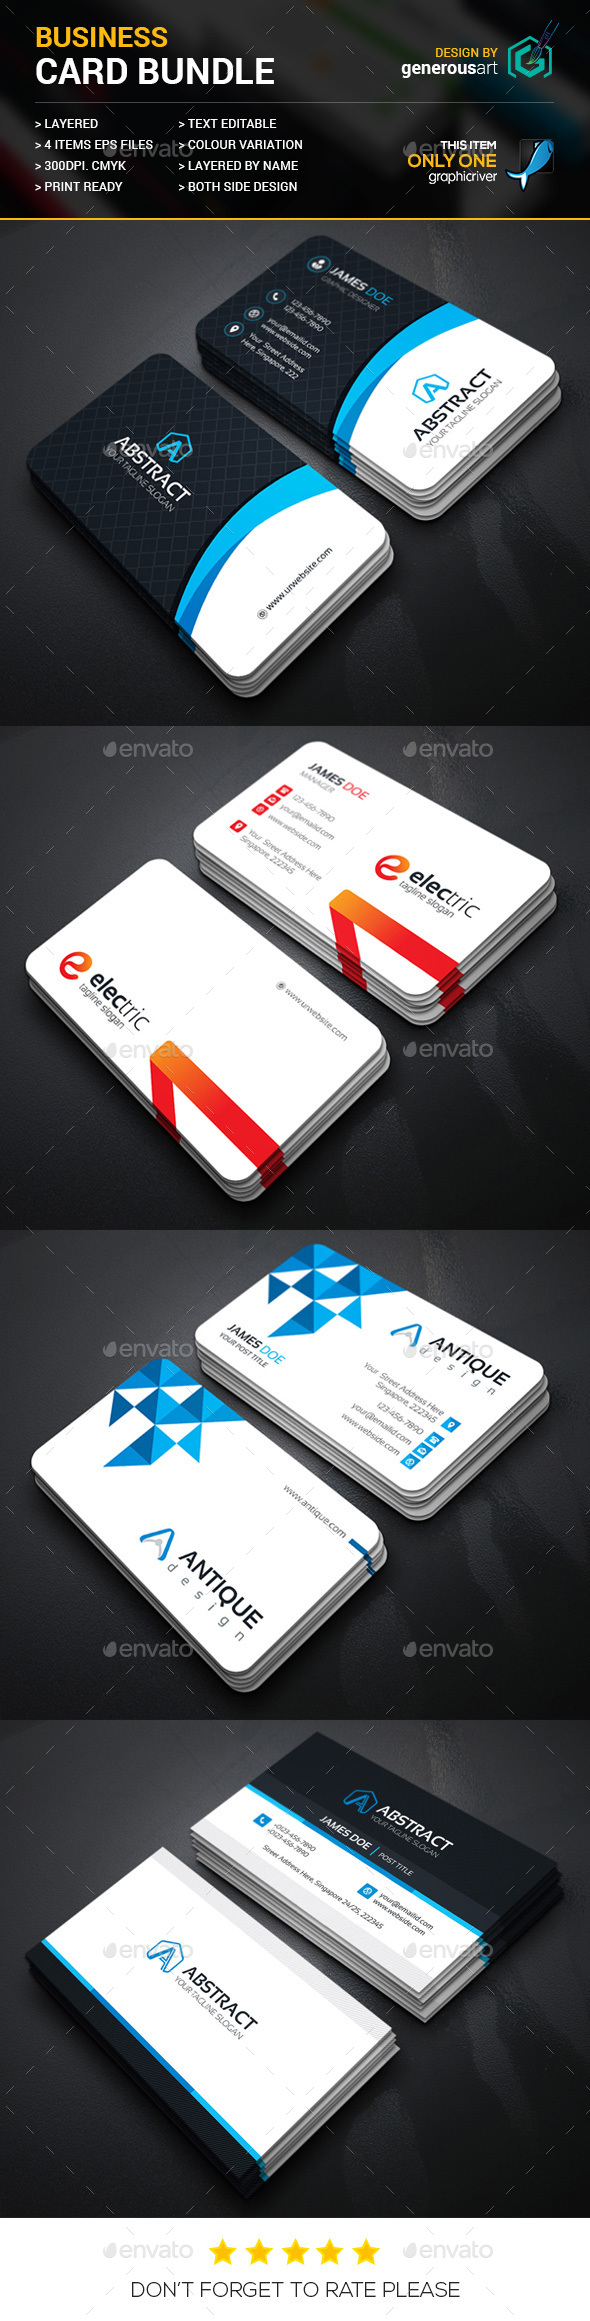 Business Card Bundle 4 in 1 29